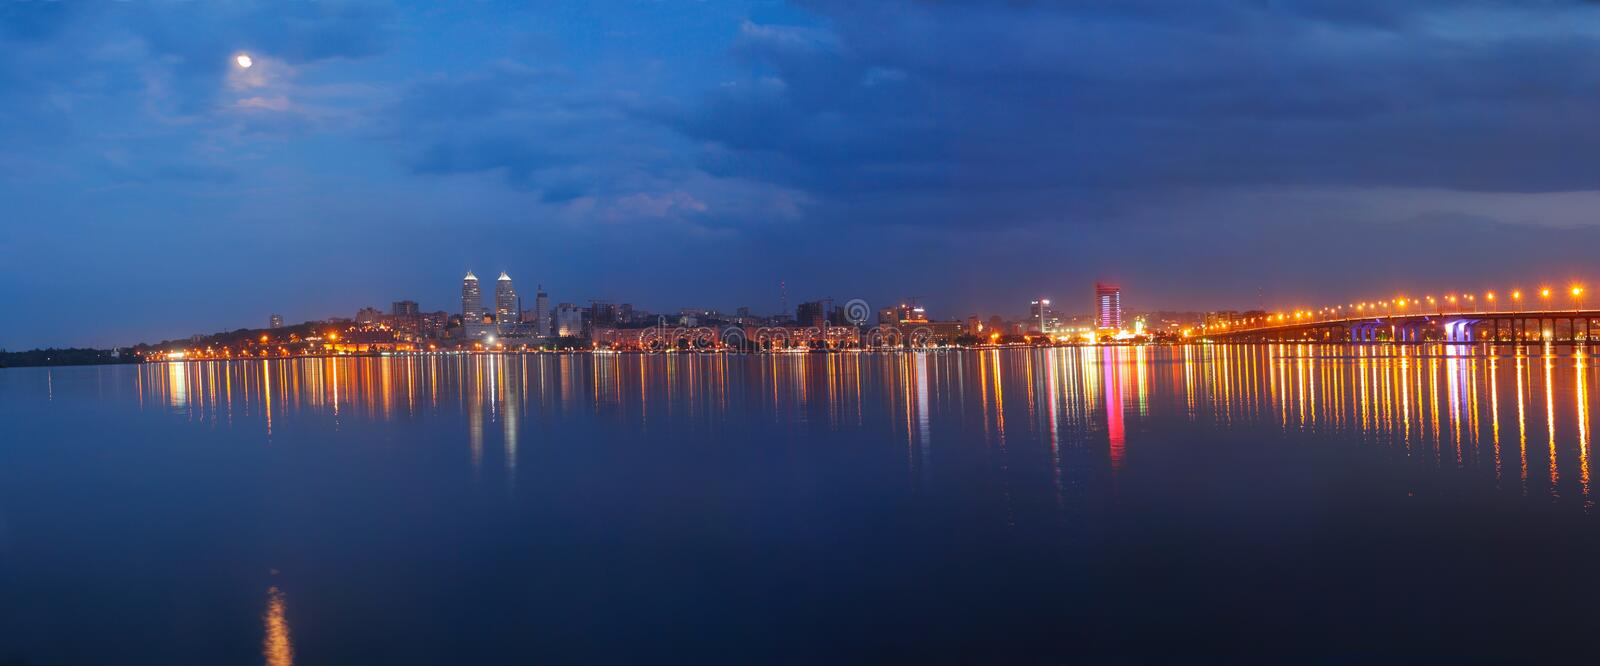 Panorama of the city at night royalty free stock photography